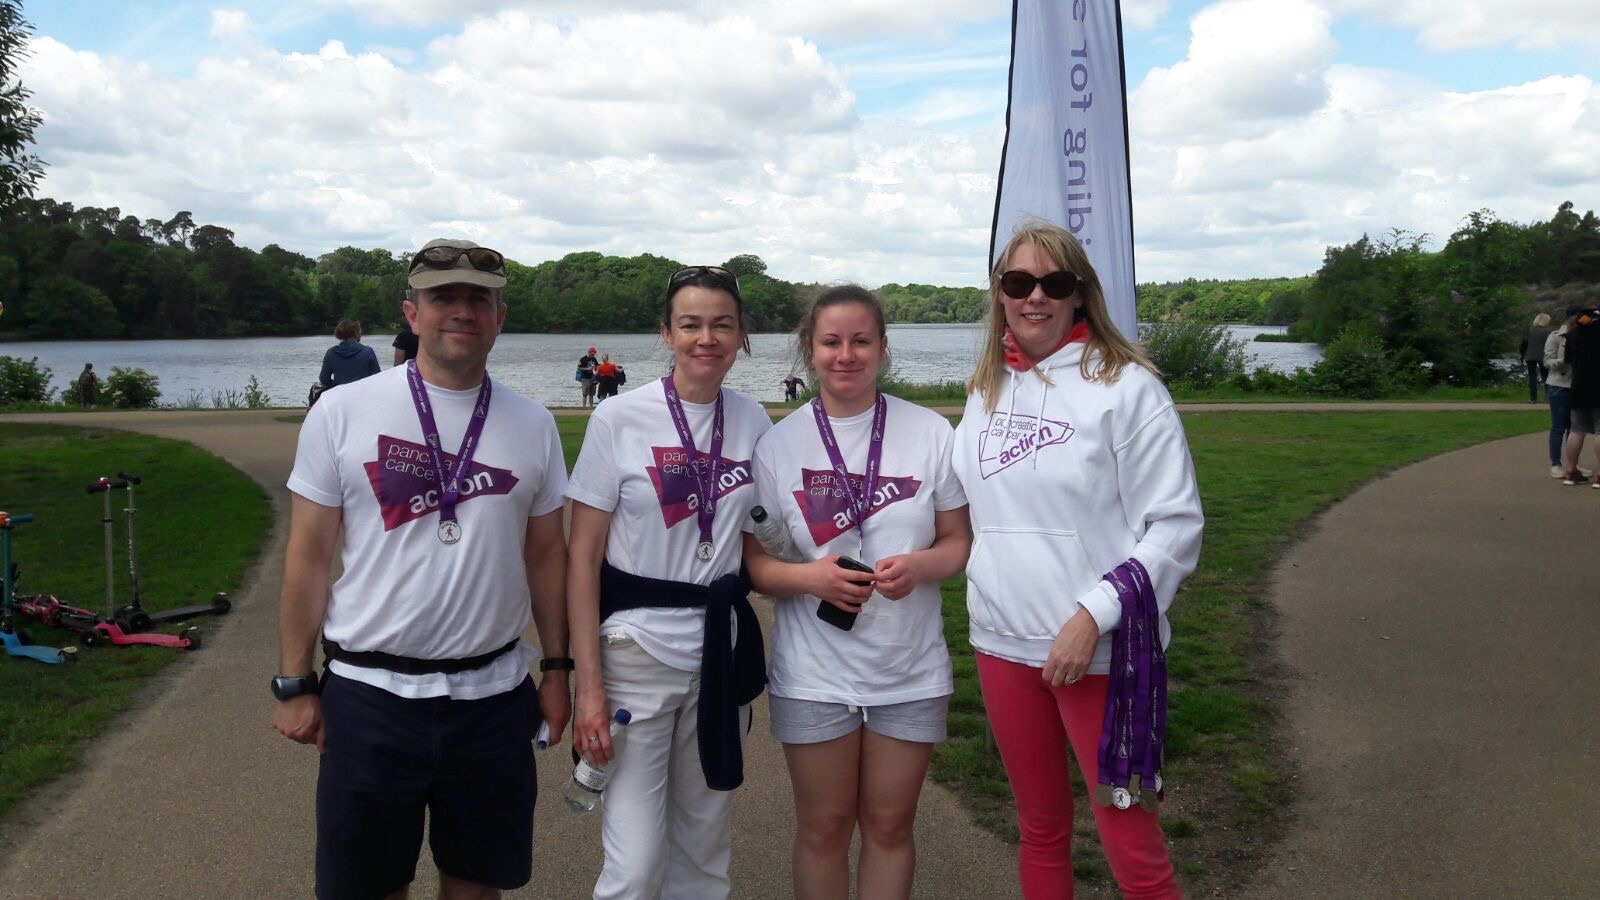 Striding for Survival - Charity walk